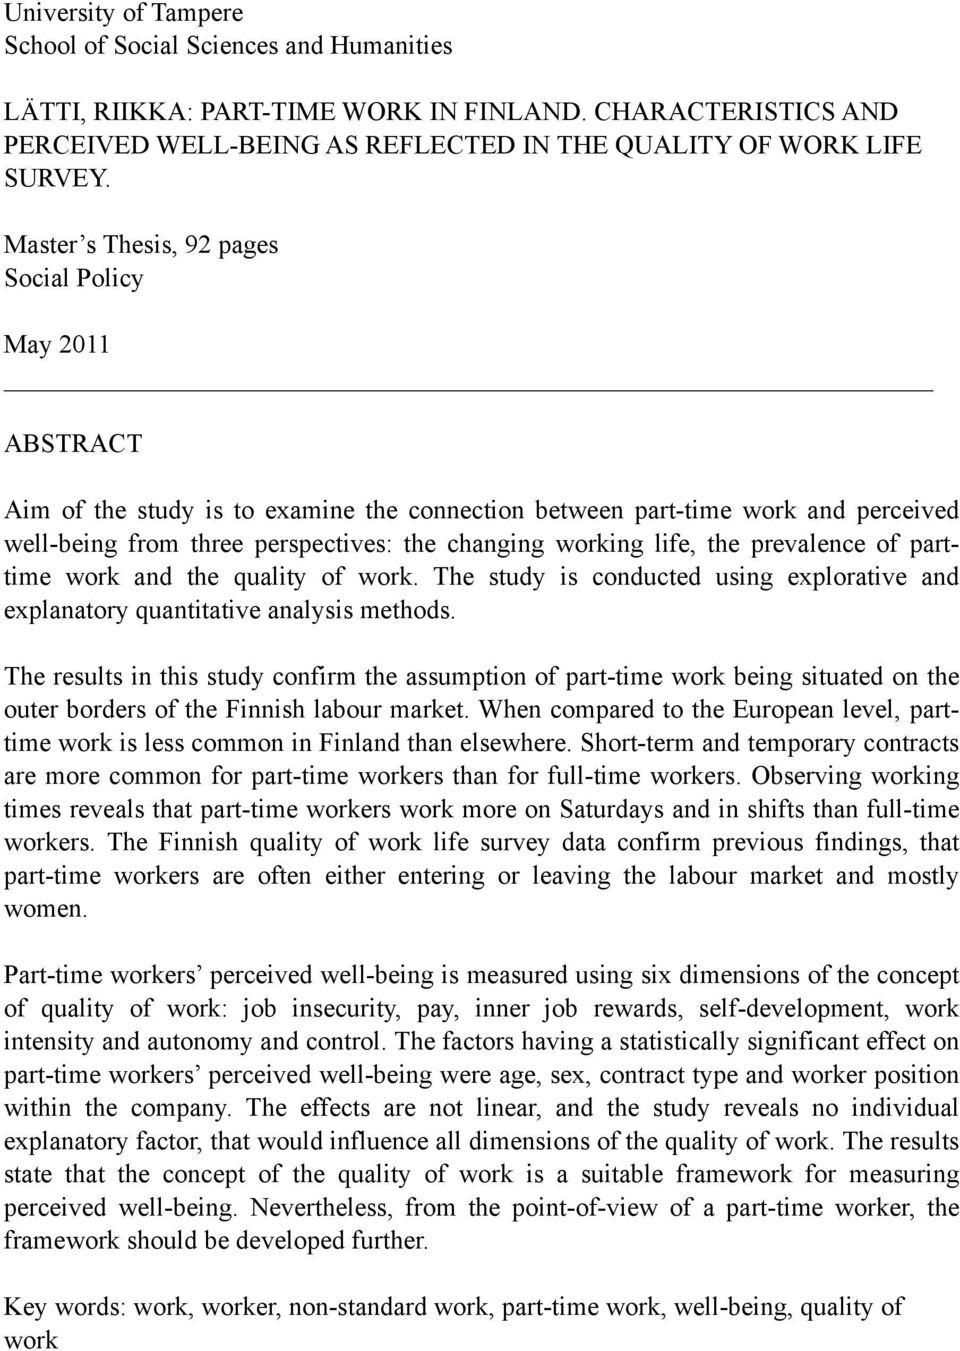 life, the prevalence of parttime work and the quality of work. The study is conducted using explorative and explanatory quantitative analysis methods.